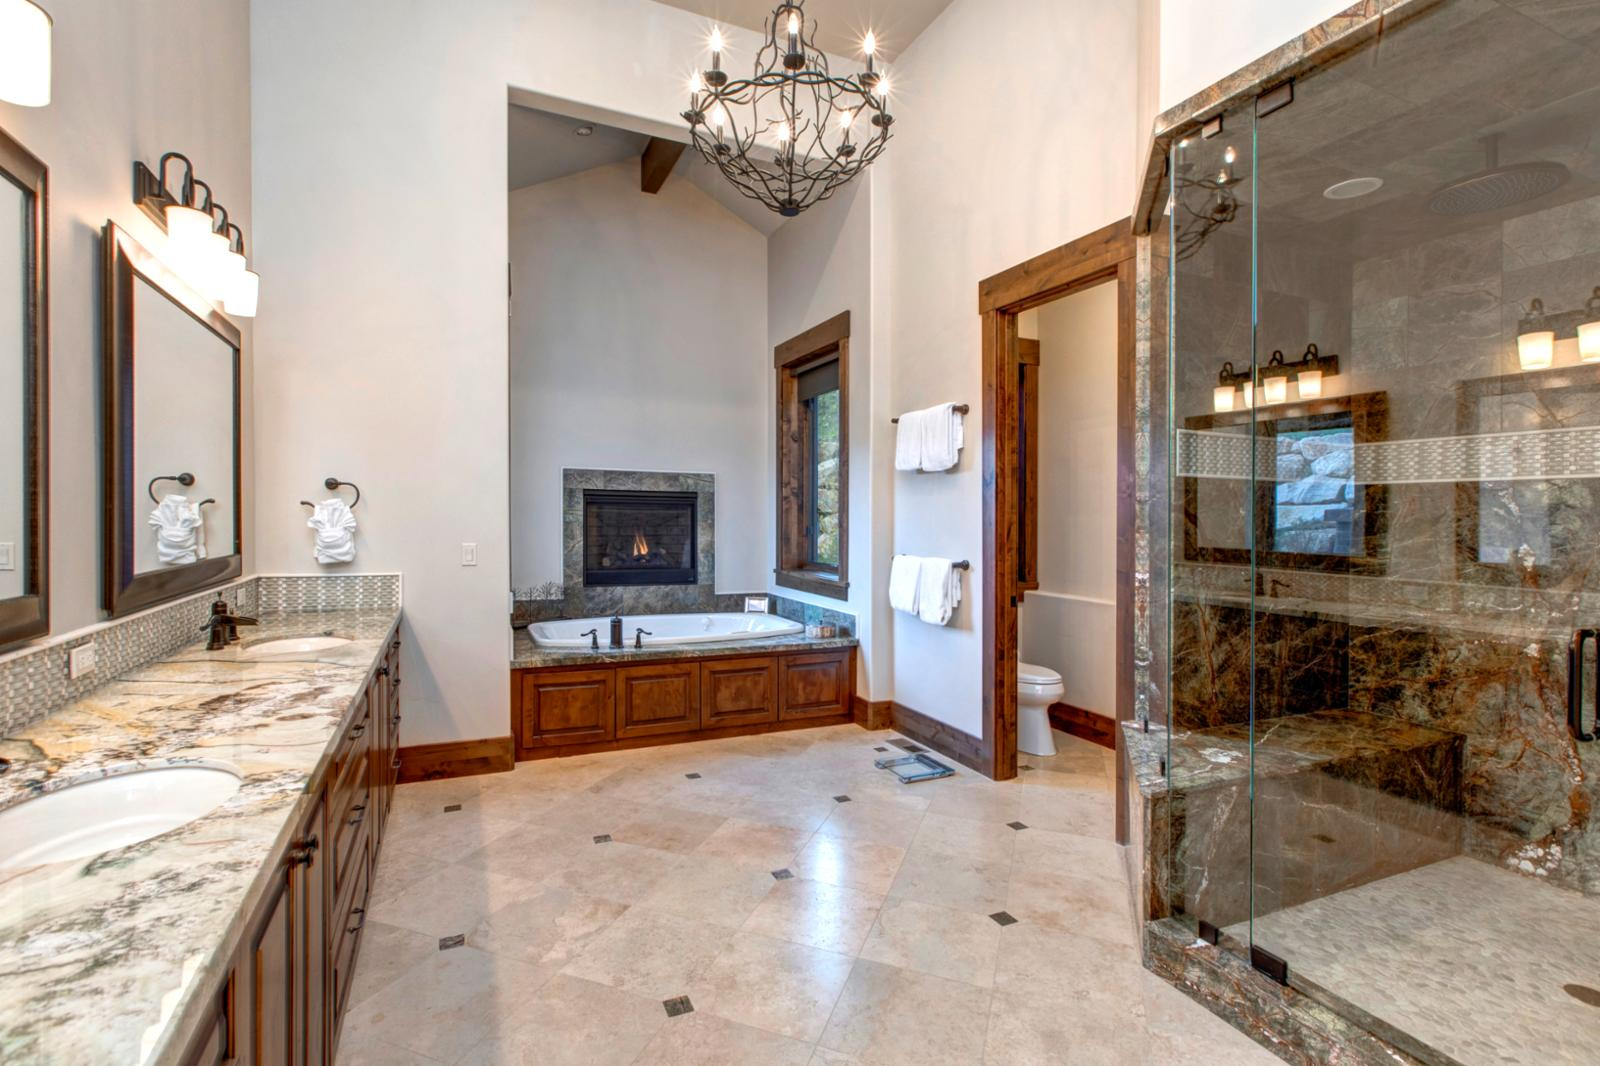 Need a spa get-a-way, enjoy this beautiful master bathroom with its own private gas fireplace